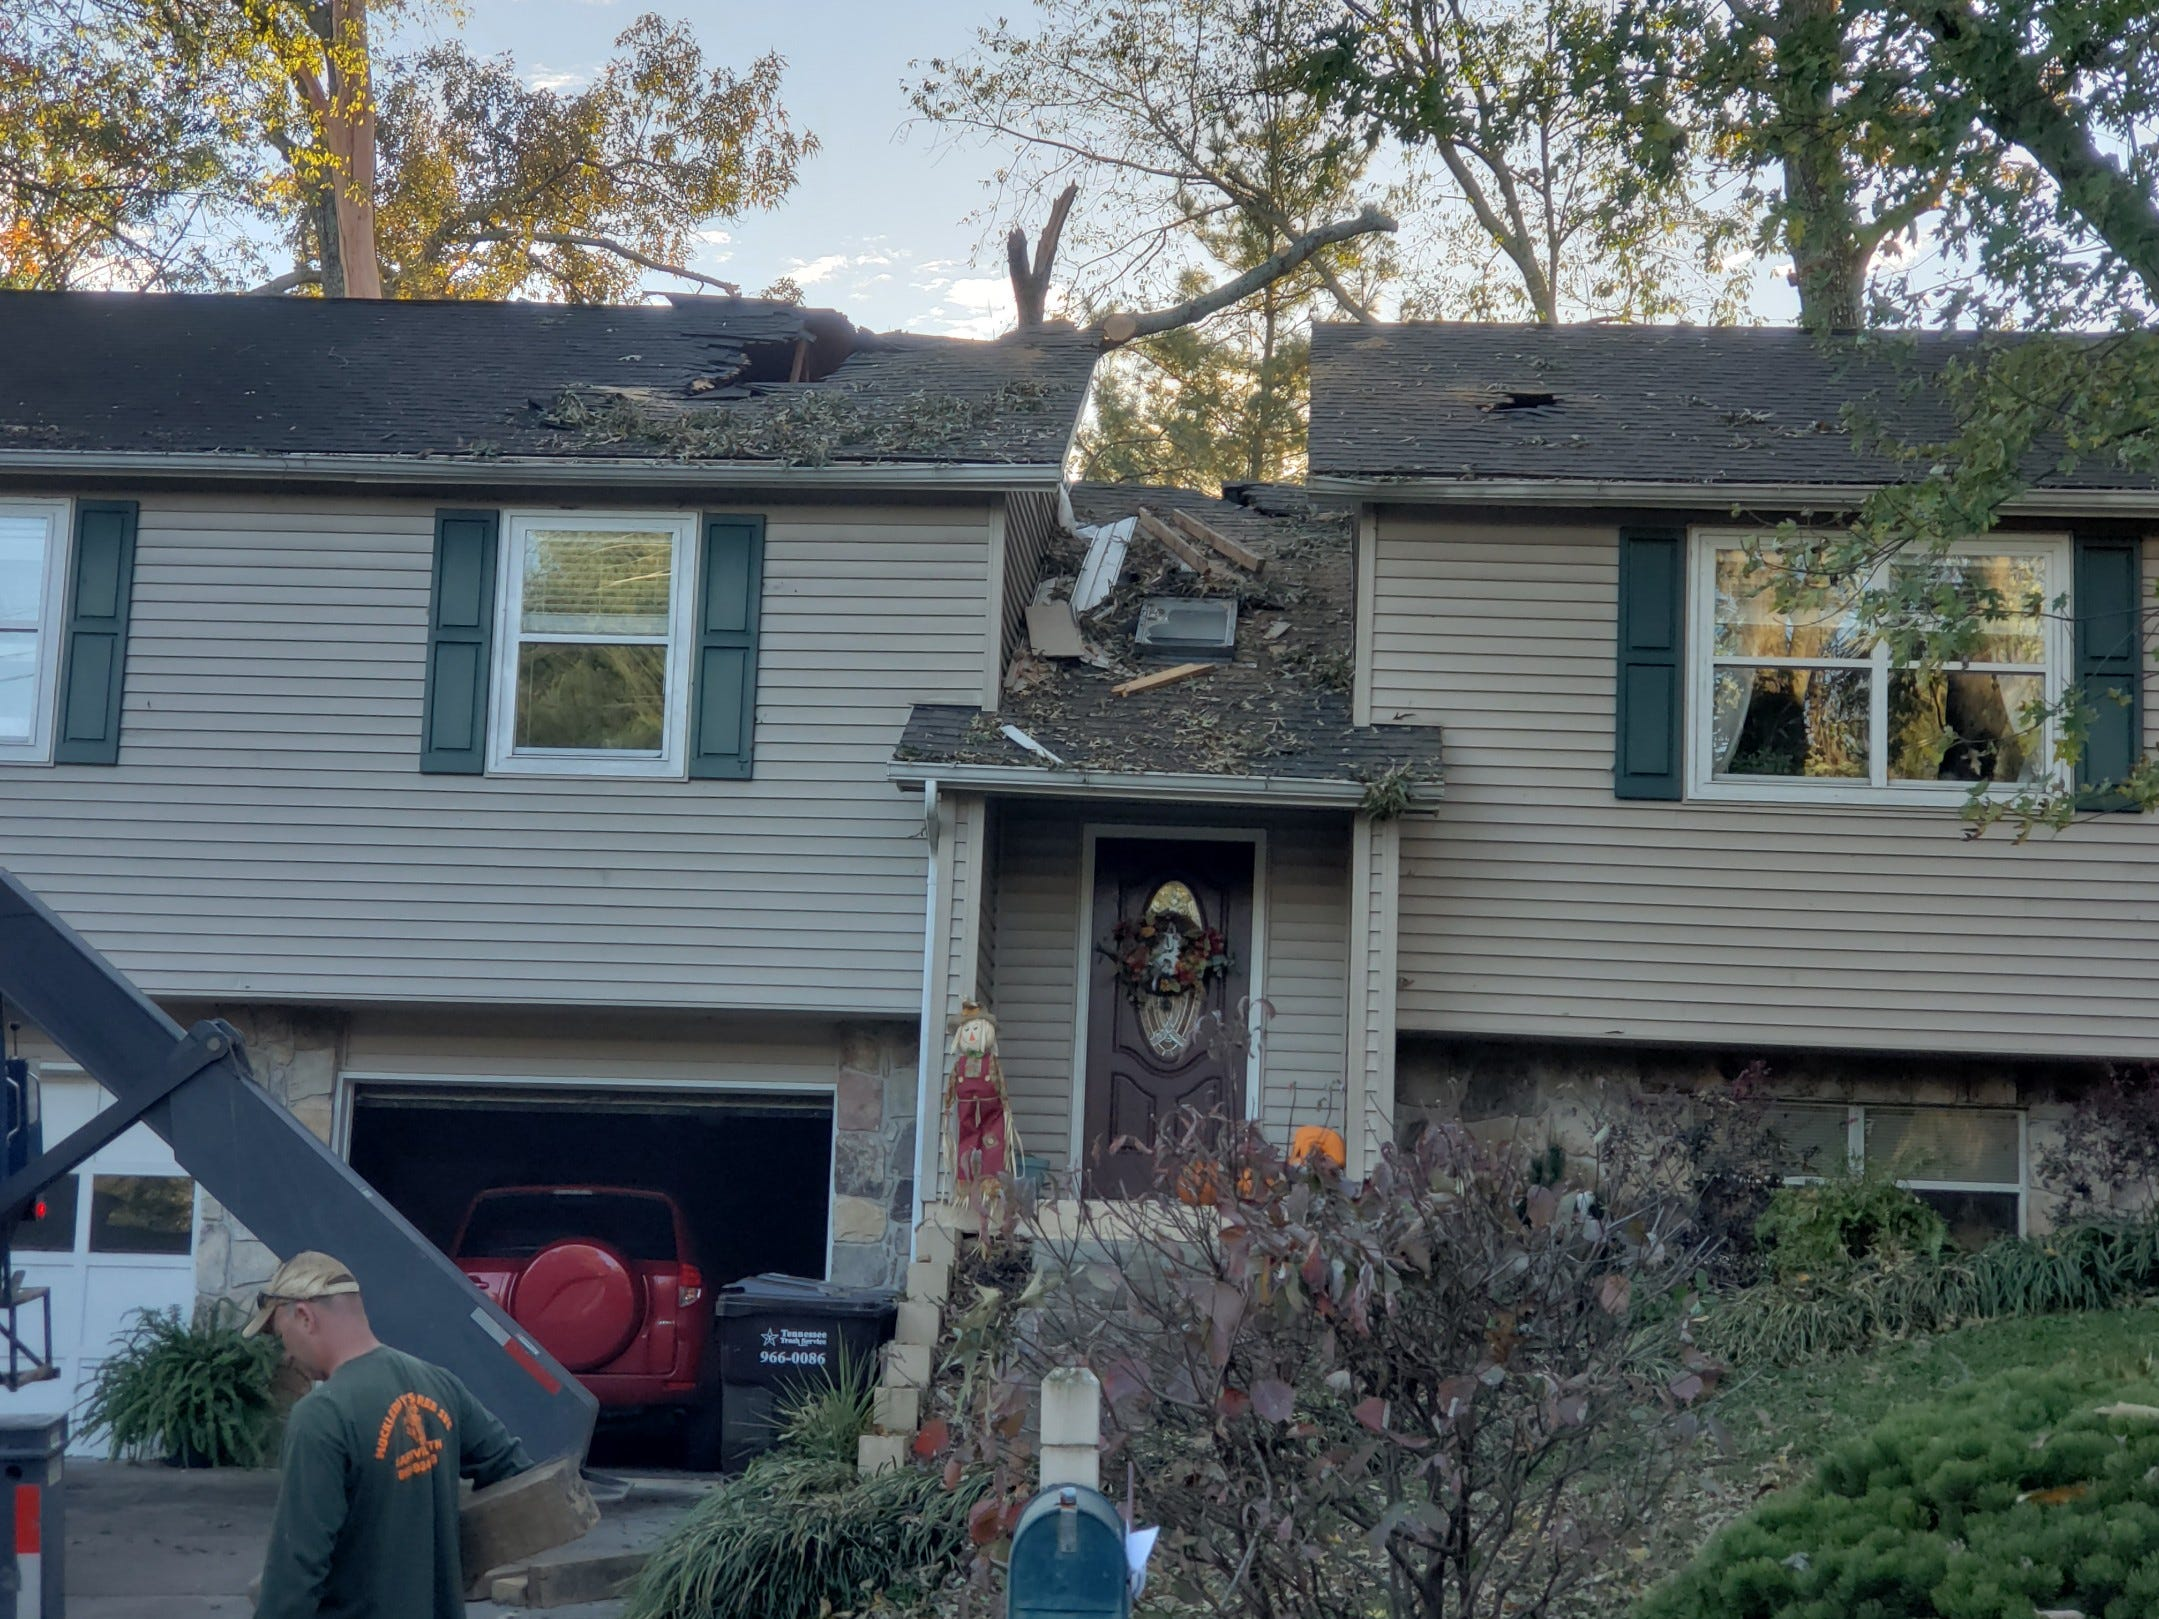 Houses were damages by downed trees in Farragut after early morning storms on Tuesday, Nov. 6, 2018.